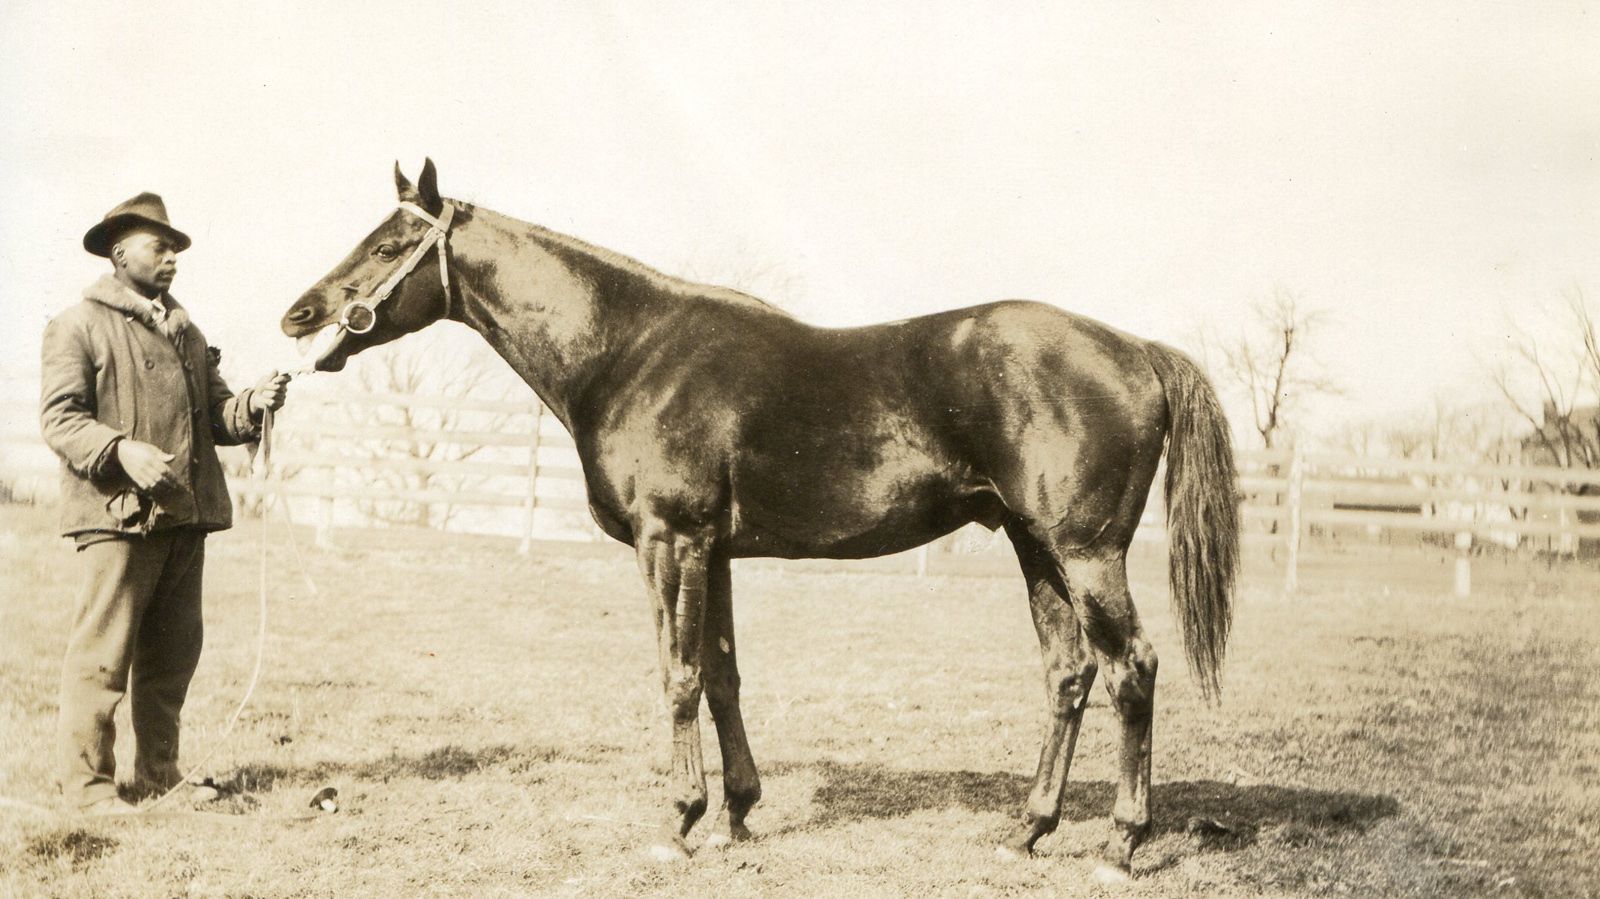 Black Gold in 1925 (L. S. Sutcliffe/Museum Collection)